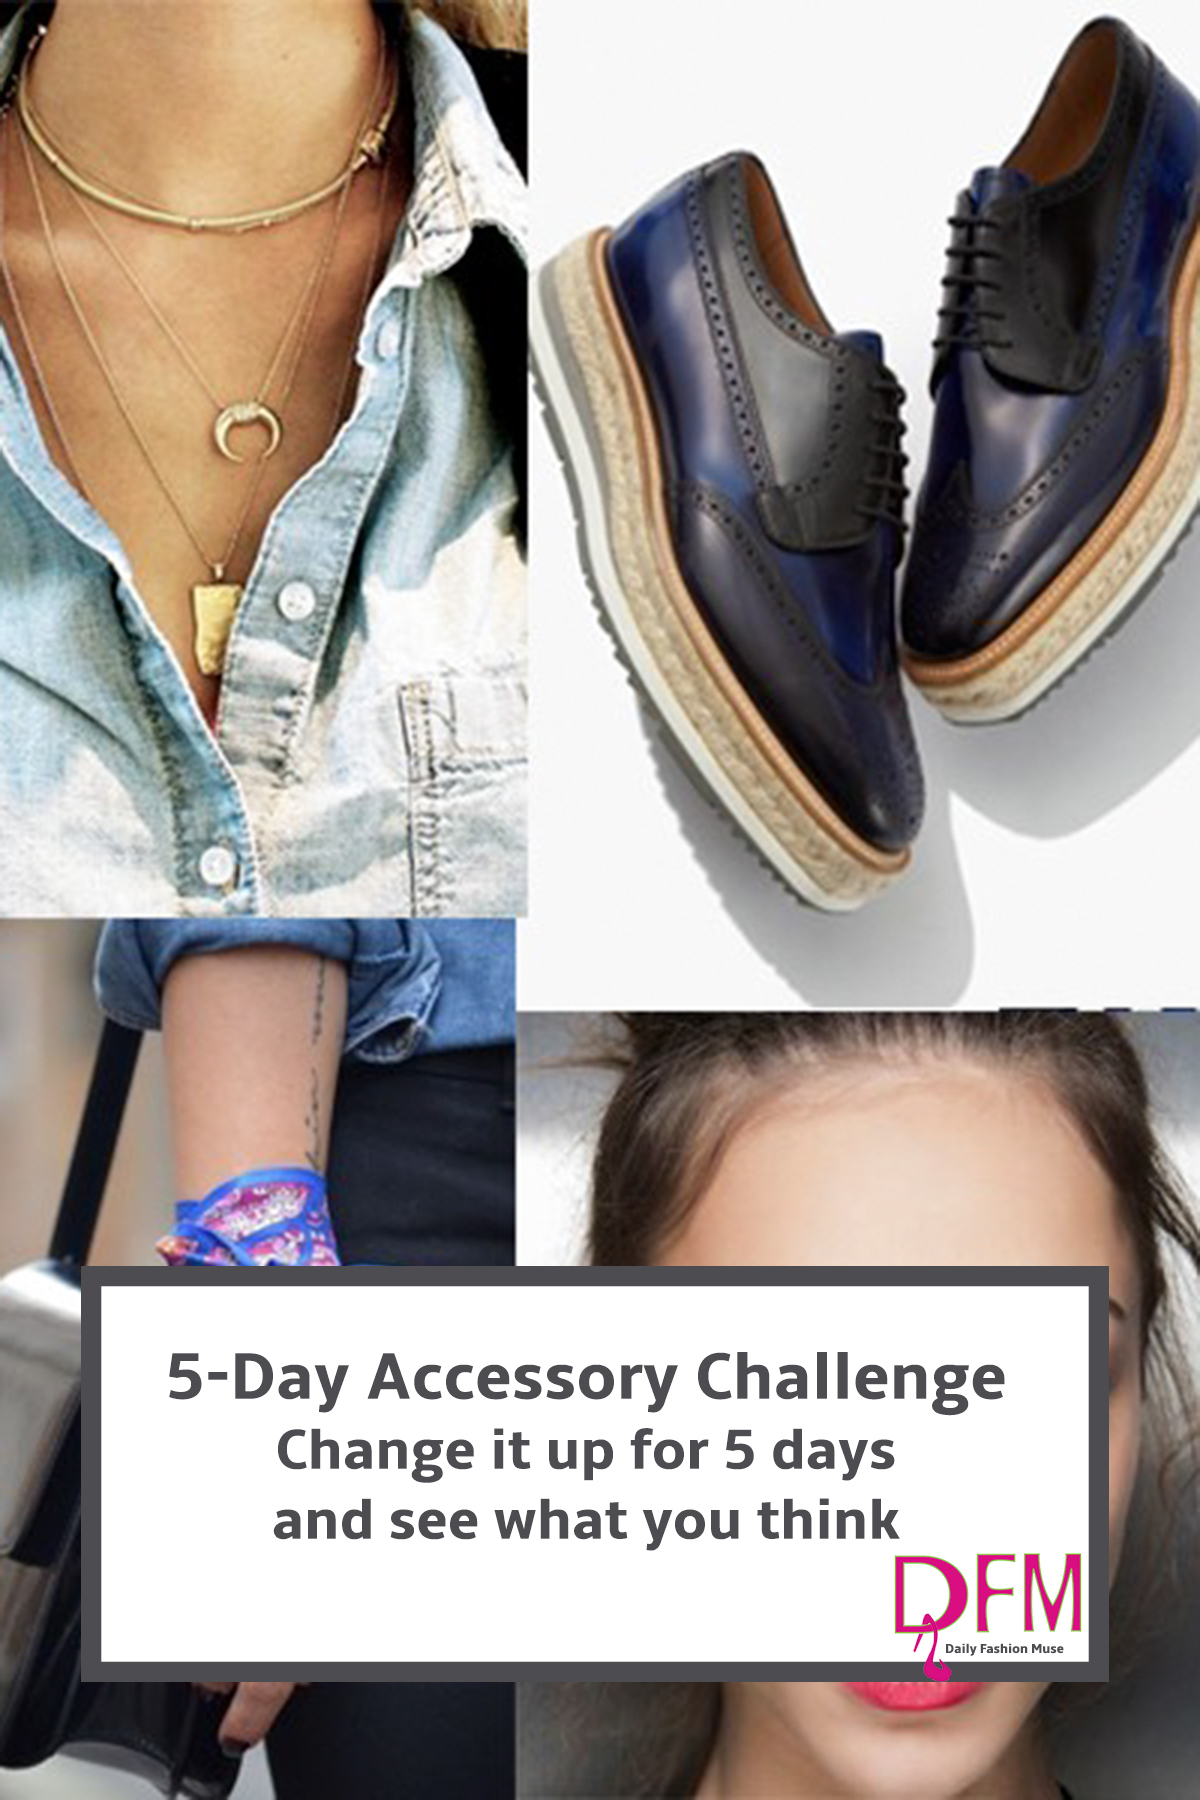 Change up your accessories for 5 days with these suggestions to give your style game a kick in the rear. Click through for suggestions.